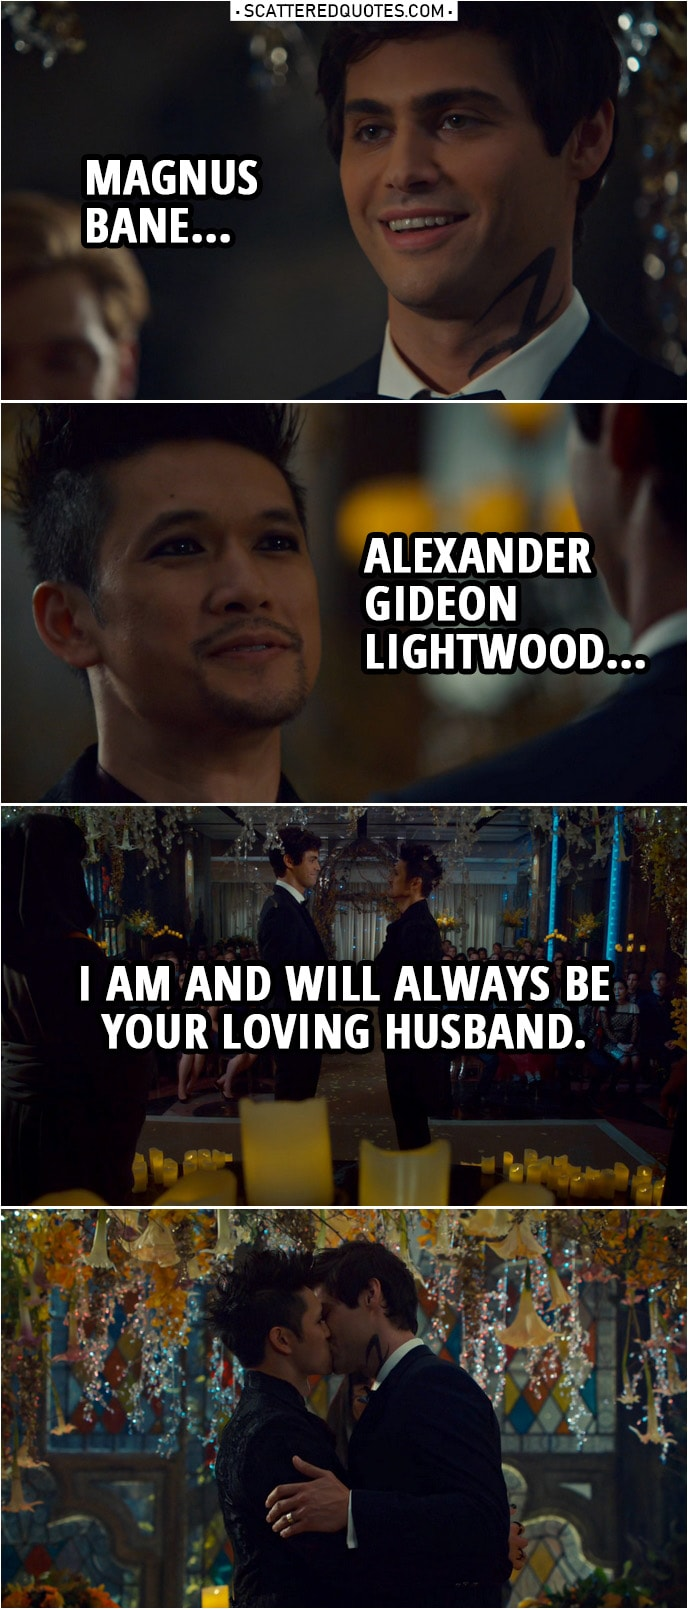 Quote from Shadowhunters 3x22 | Alec Lightwood: Magnus Bane... Magnus Bane: Alexander Gideon Lightwood... Alec and Magnus: I am and will always be your loving husband. Brother Zachariah: It is my honor to pronounce you one.